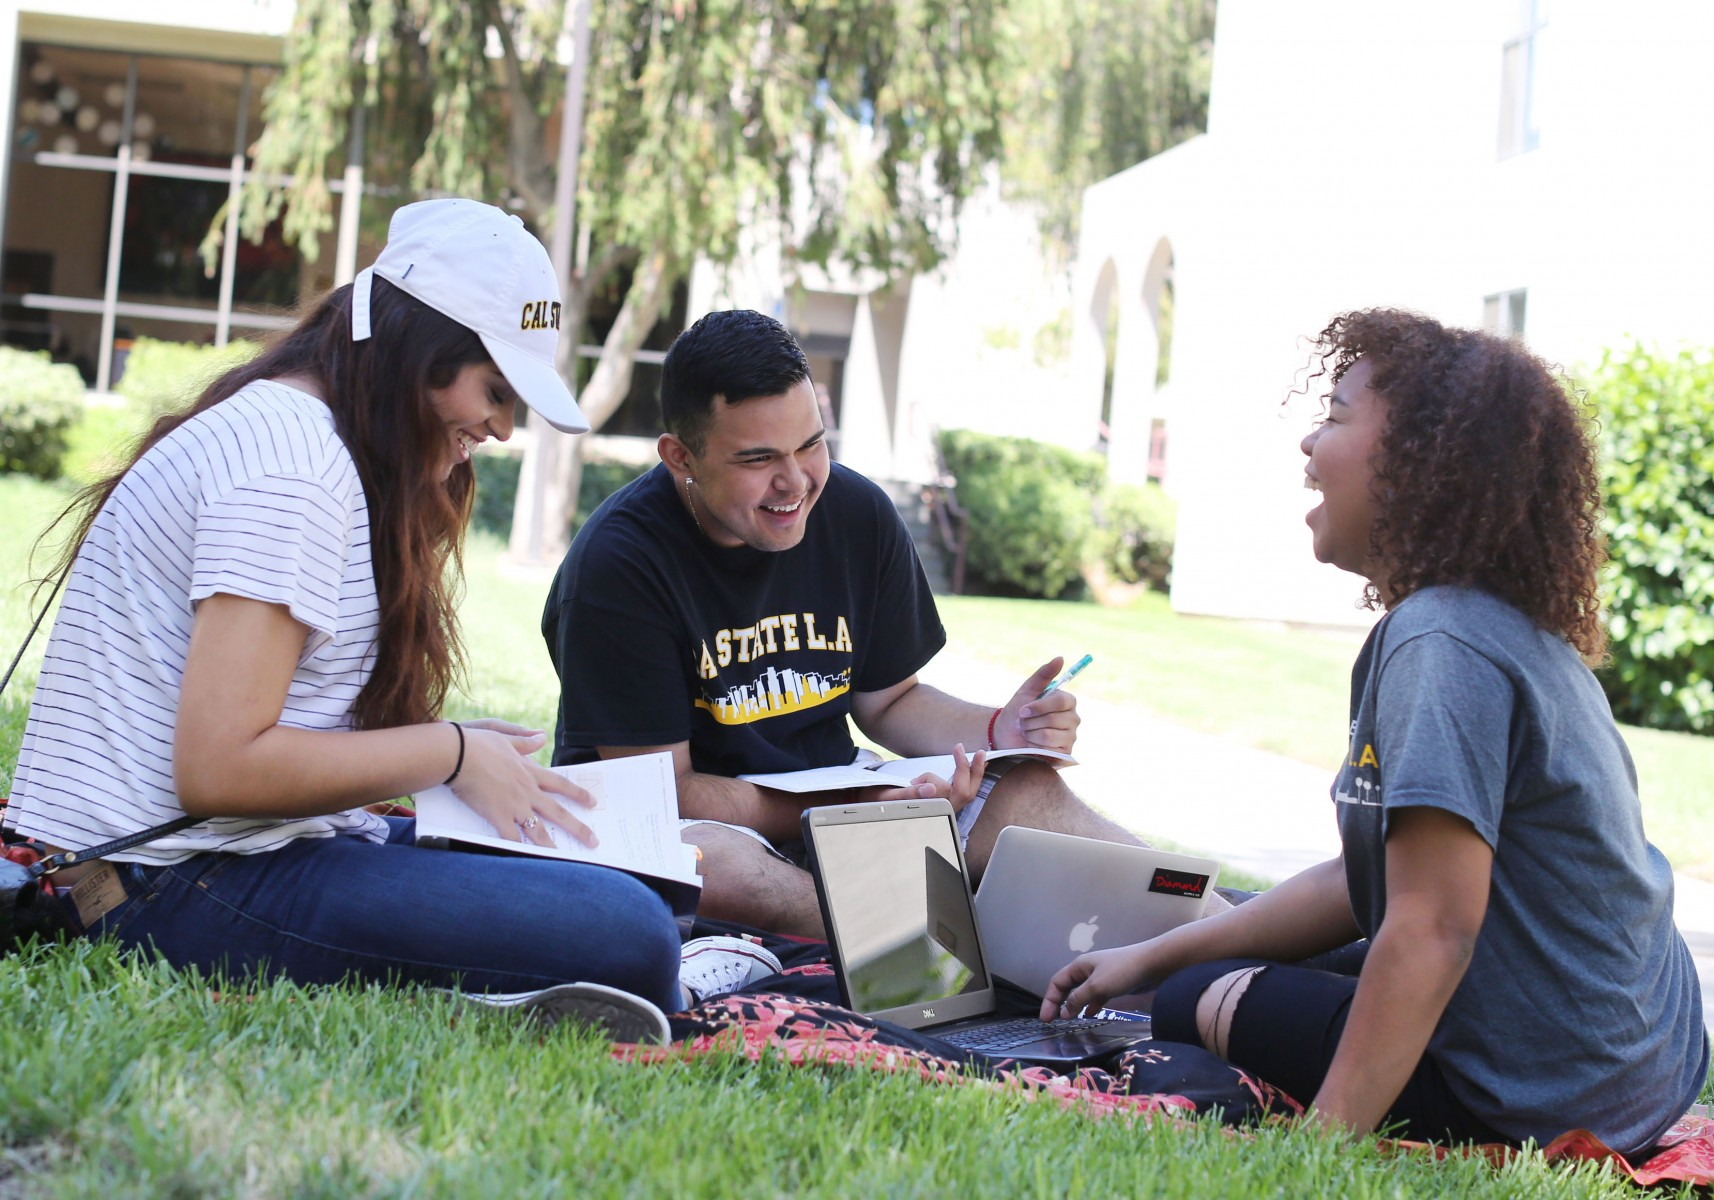 Three students sitting outdoors on a lawn, studying and smiling.